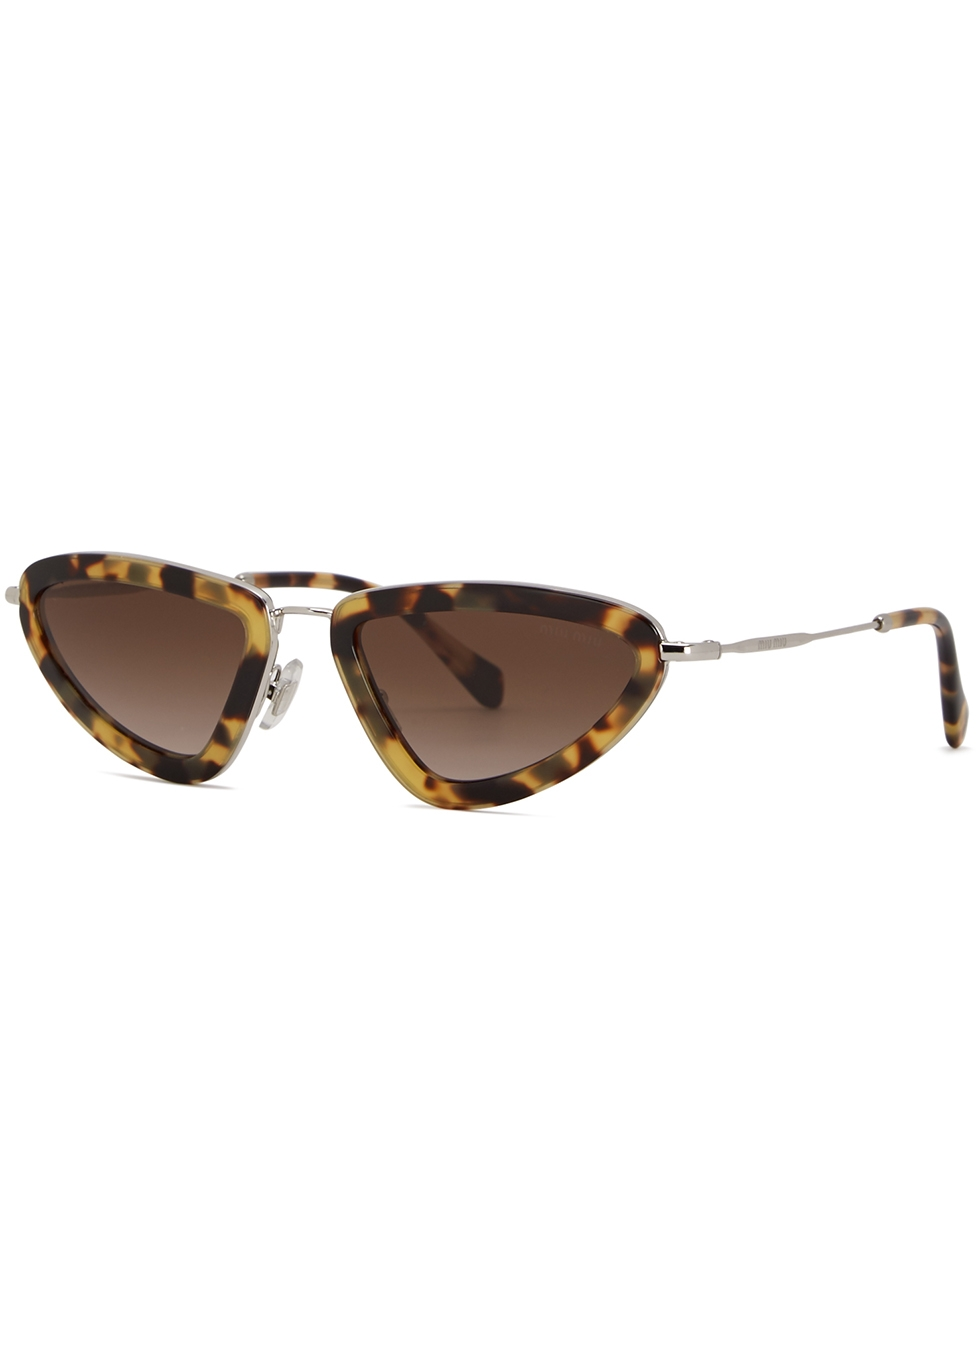 Tortoiseshell cat-eye sunglasses - Miu Miu